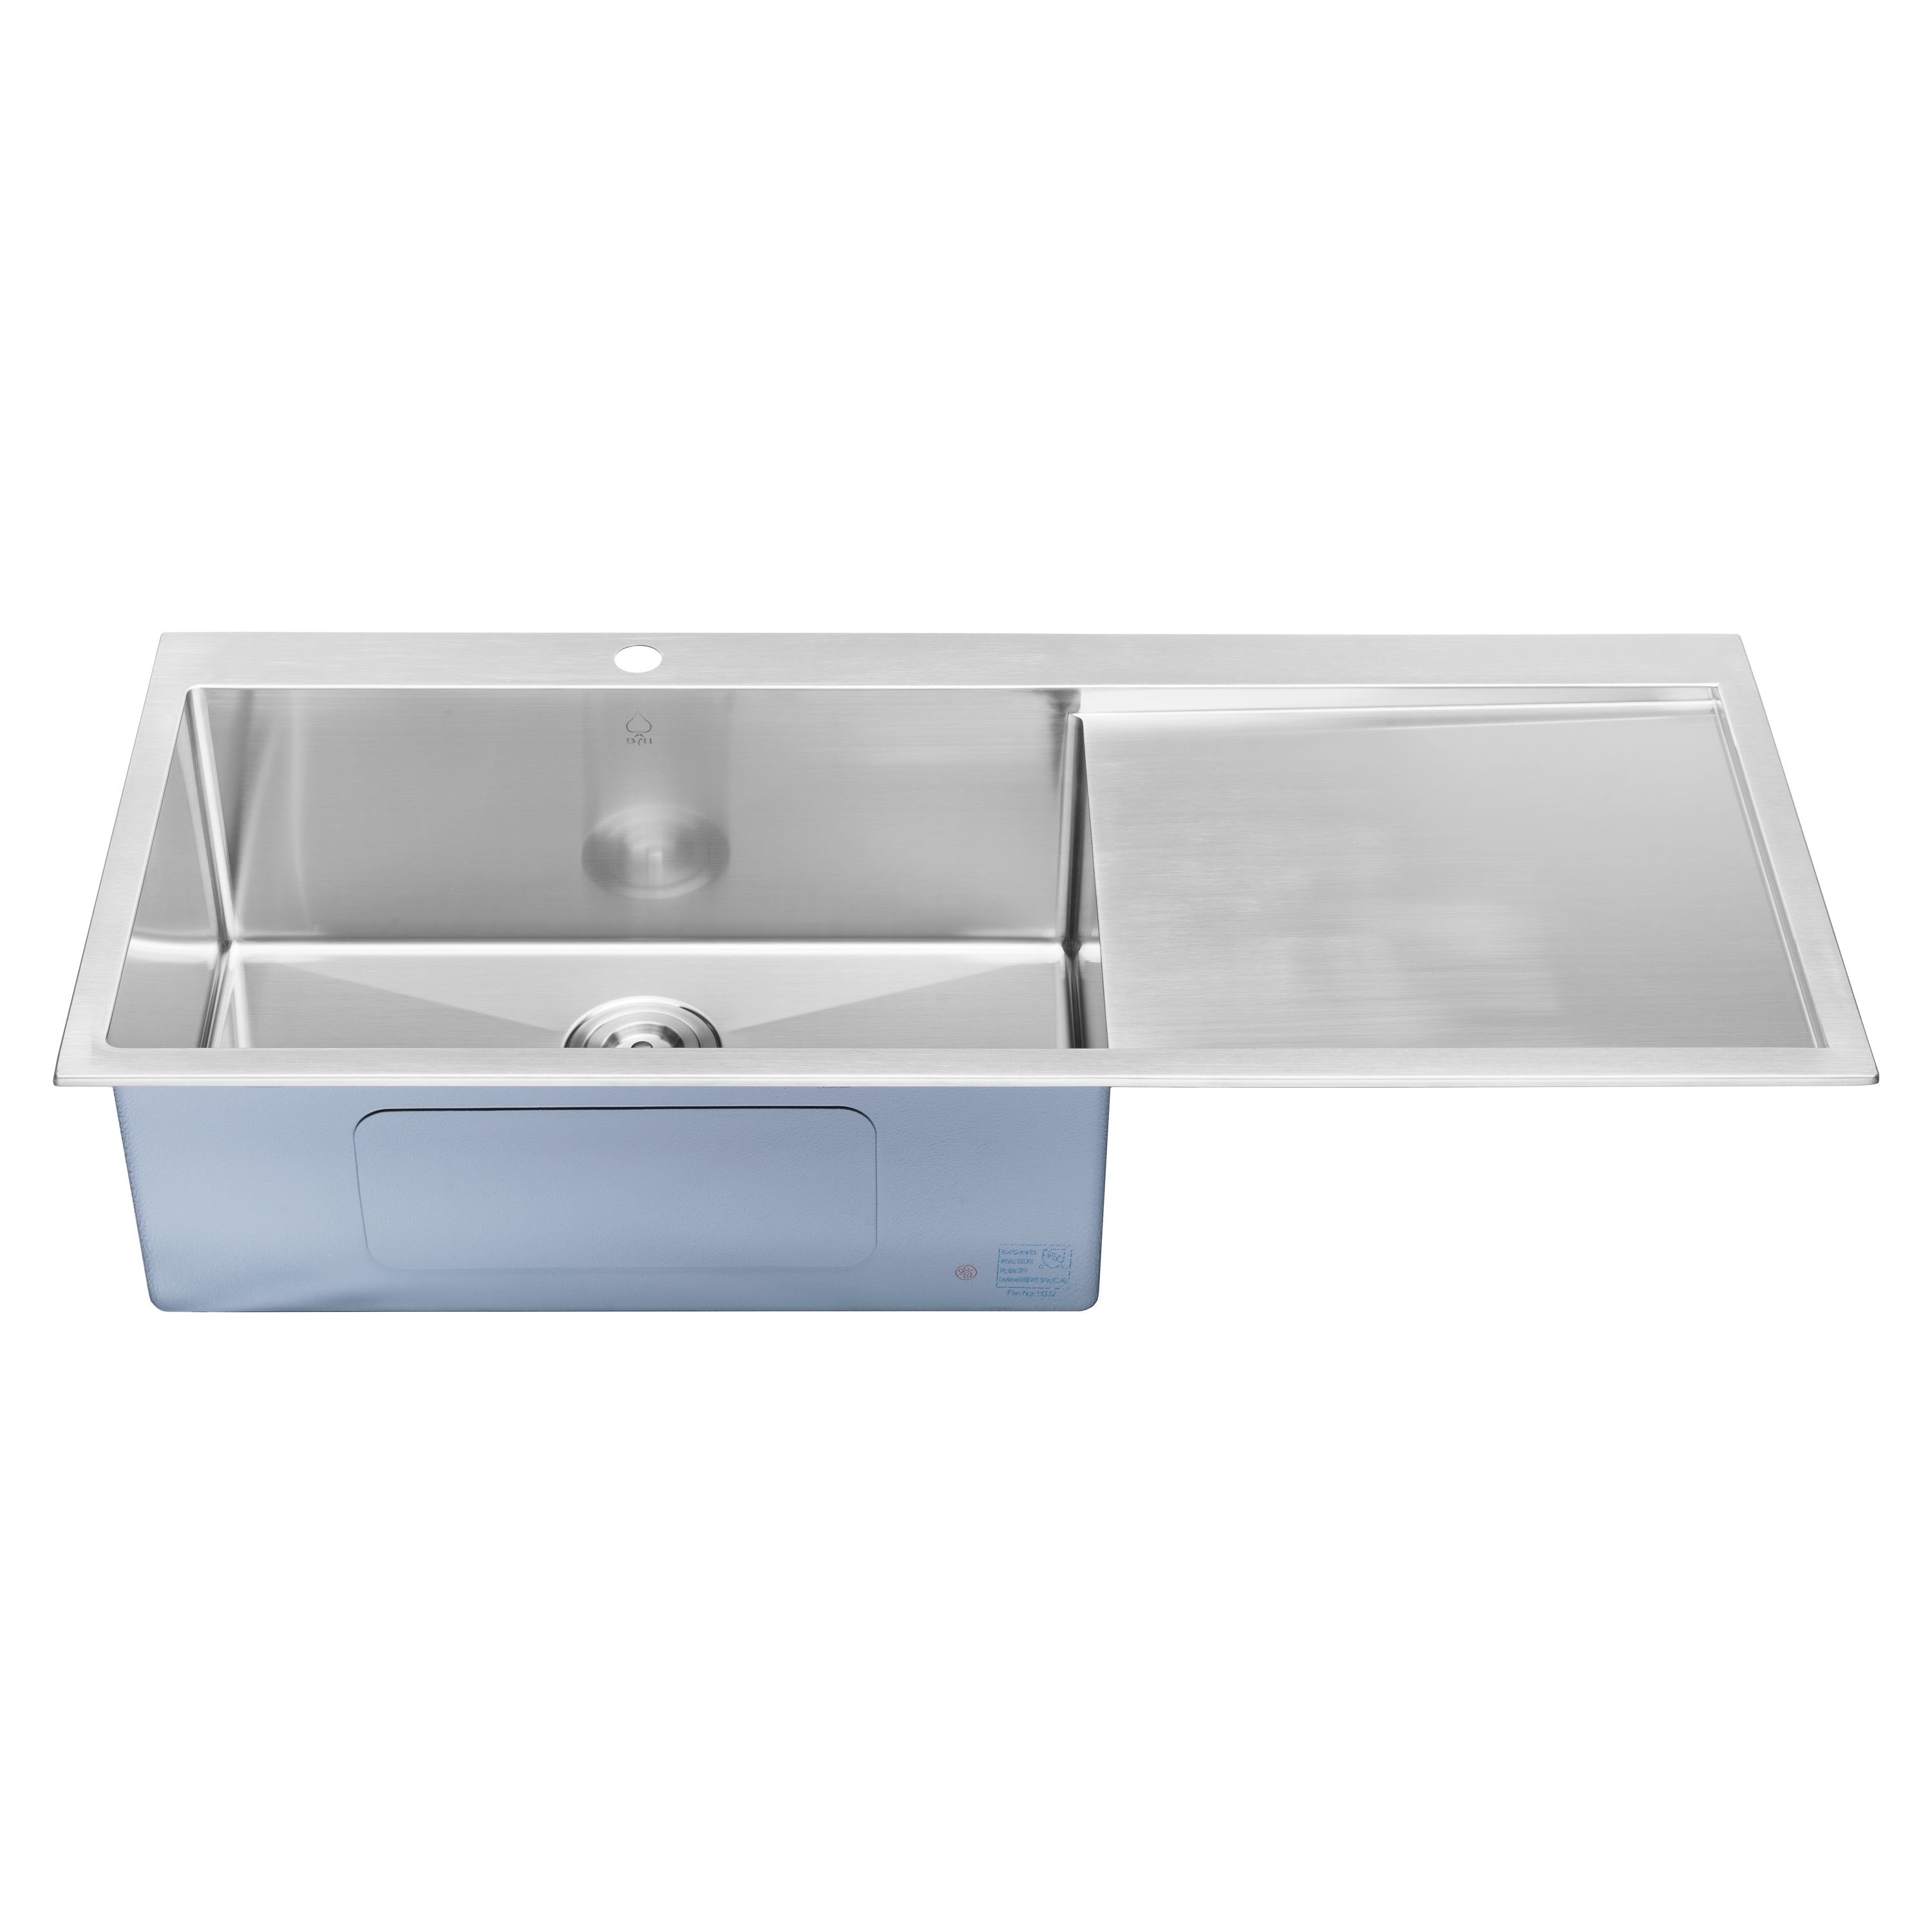 Bai 1233 Handmade 48 Inch Top Mount Single Bowl With Drainboard 16 Gauge Stainless Steel Kitchen Sink Megabai